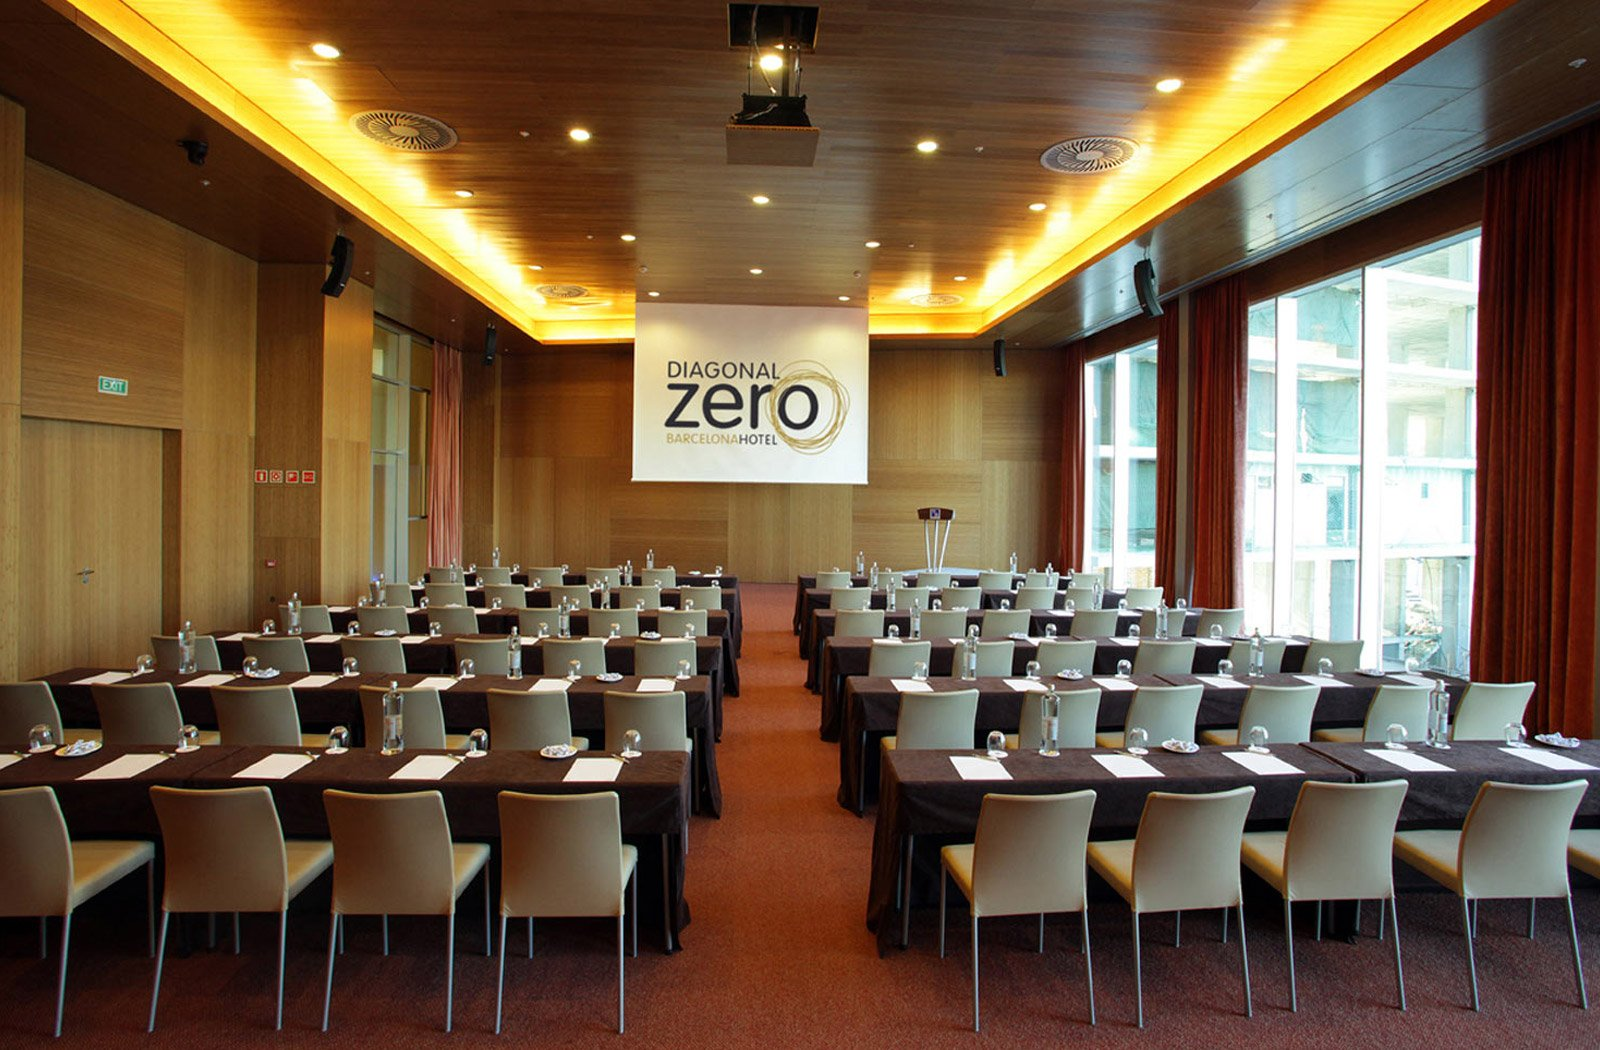 Hotel SB Diagonal Zero | Meeting ed eventi